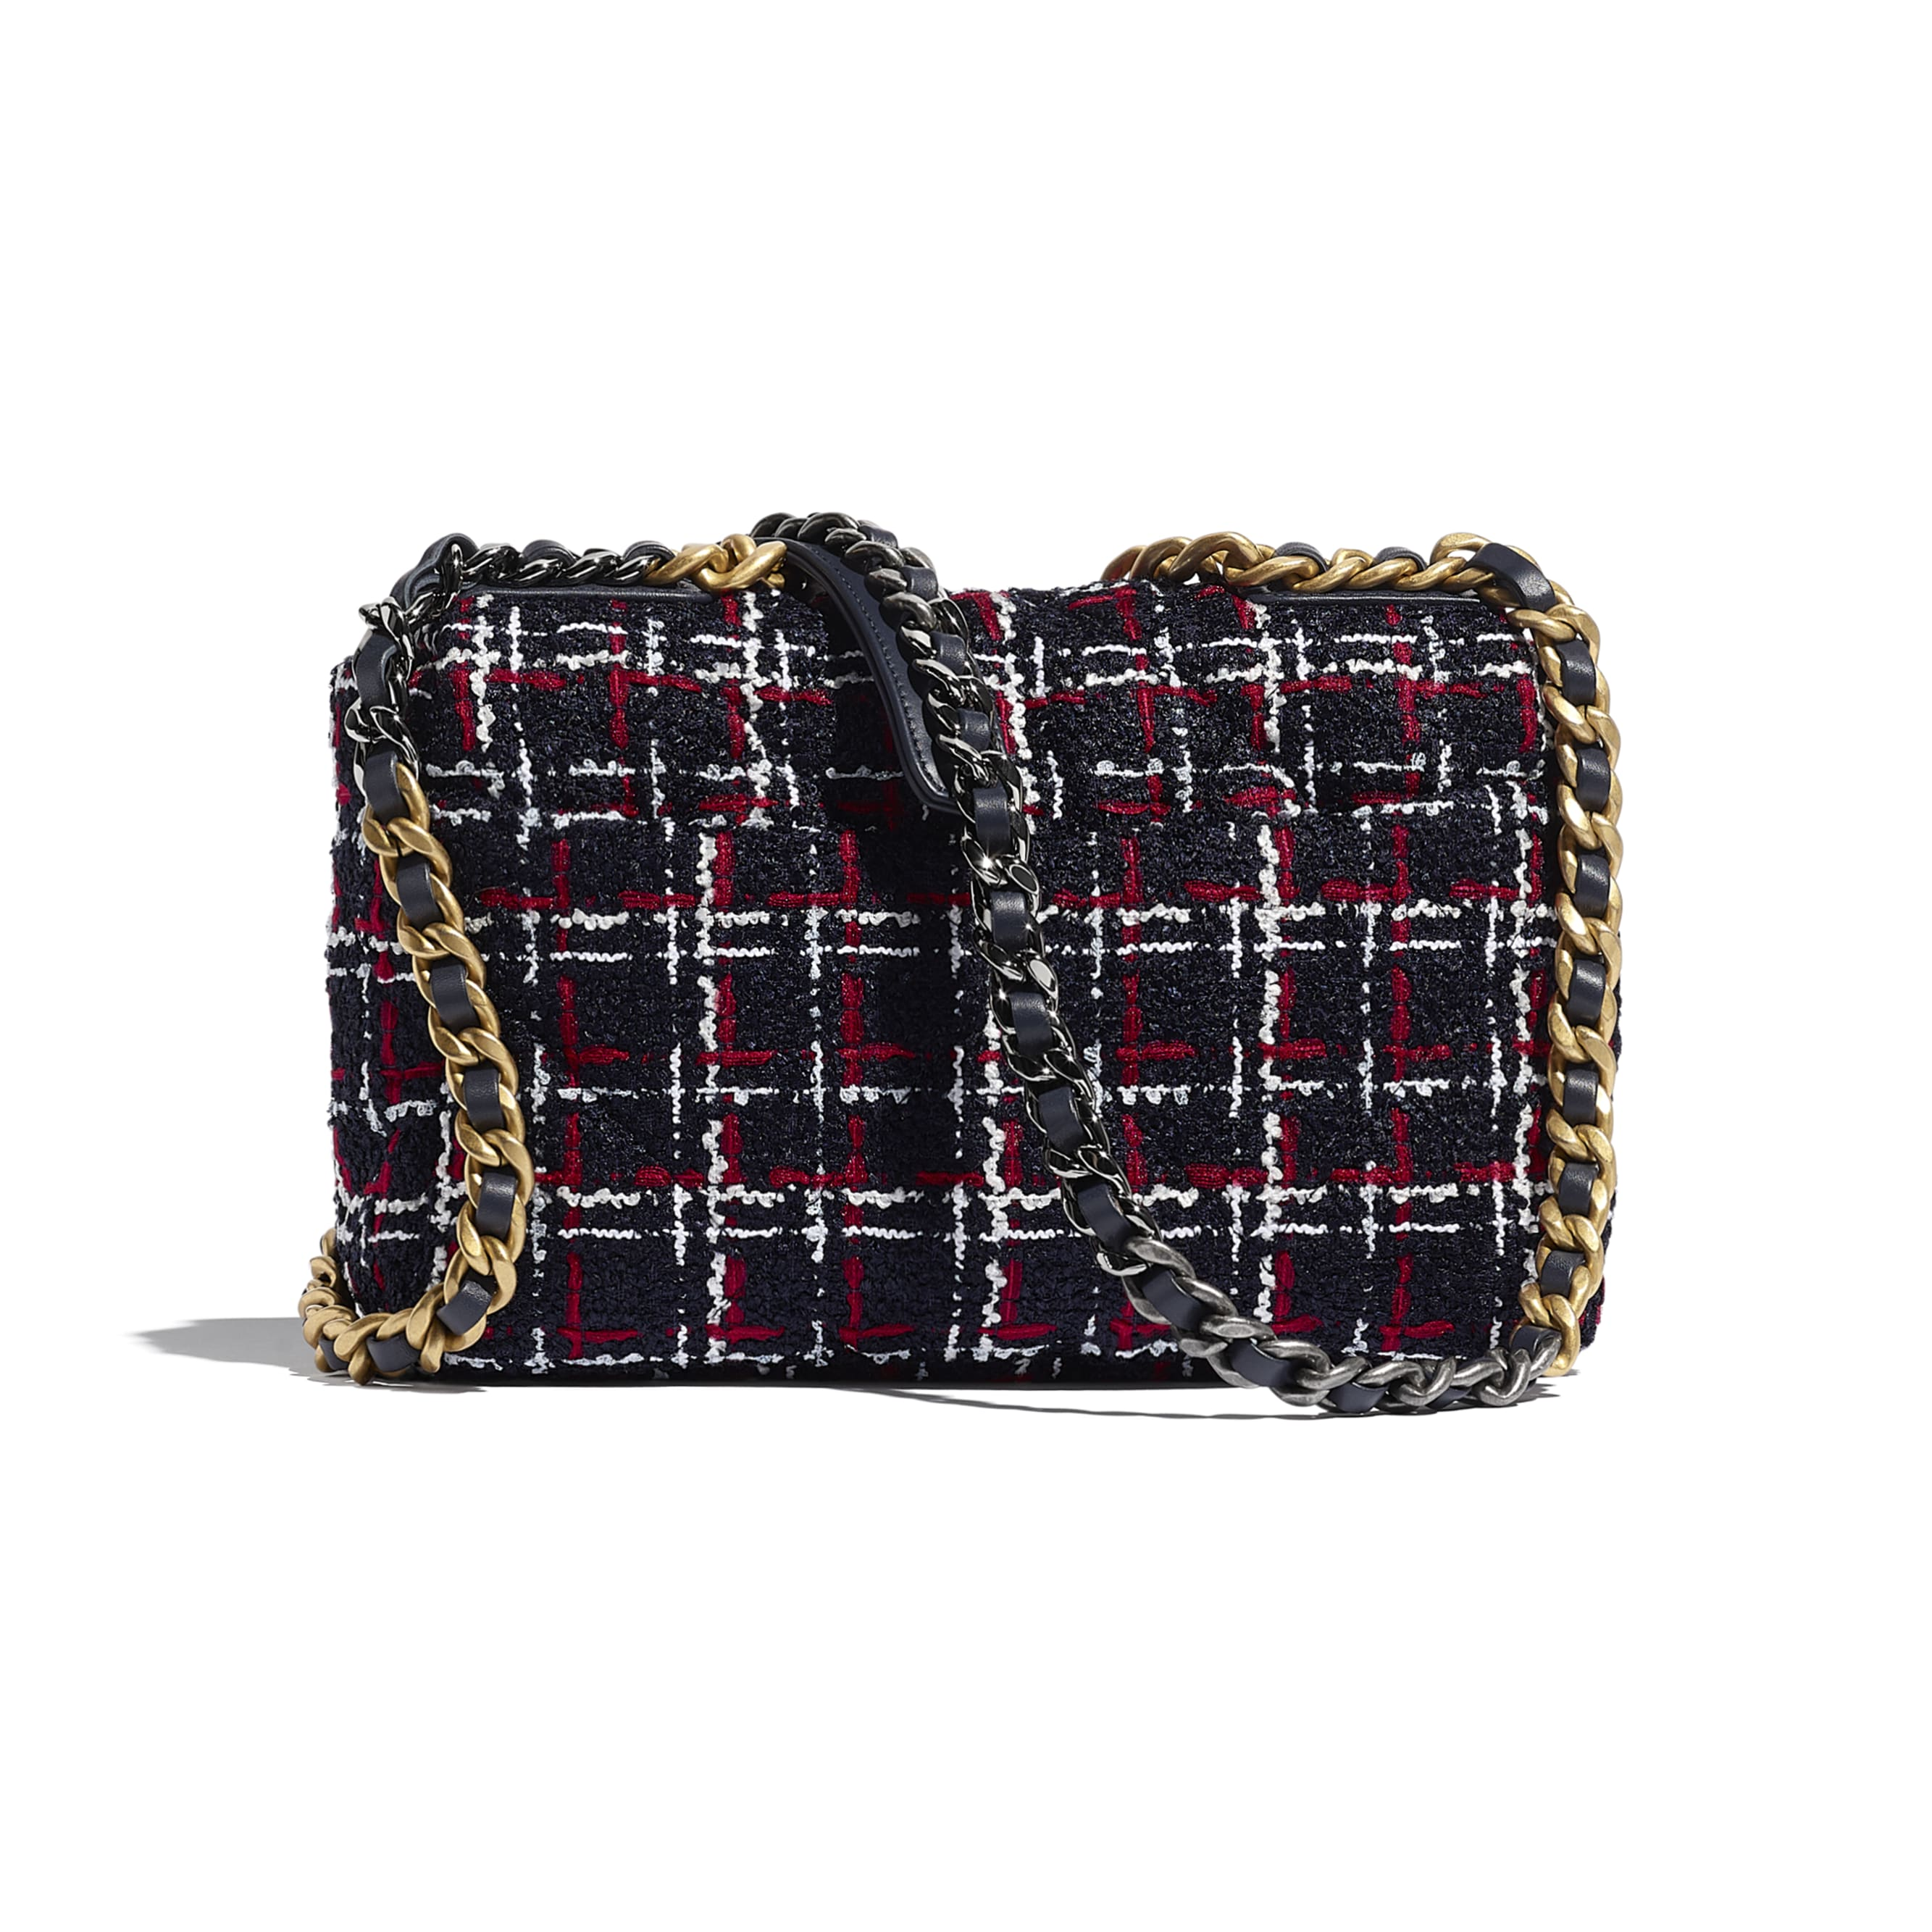 CHANEL 19 Flap Bag - Navy Blue, White & Red - Tweed, Gold-Tone, Silver-Tone & Ruthenium-Finish Metal - CHANEL - Alternative view - see standard sized version